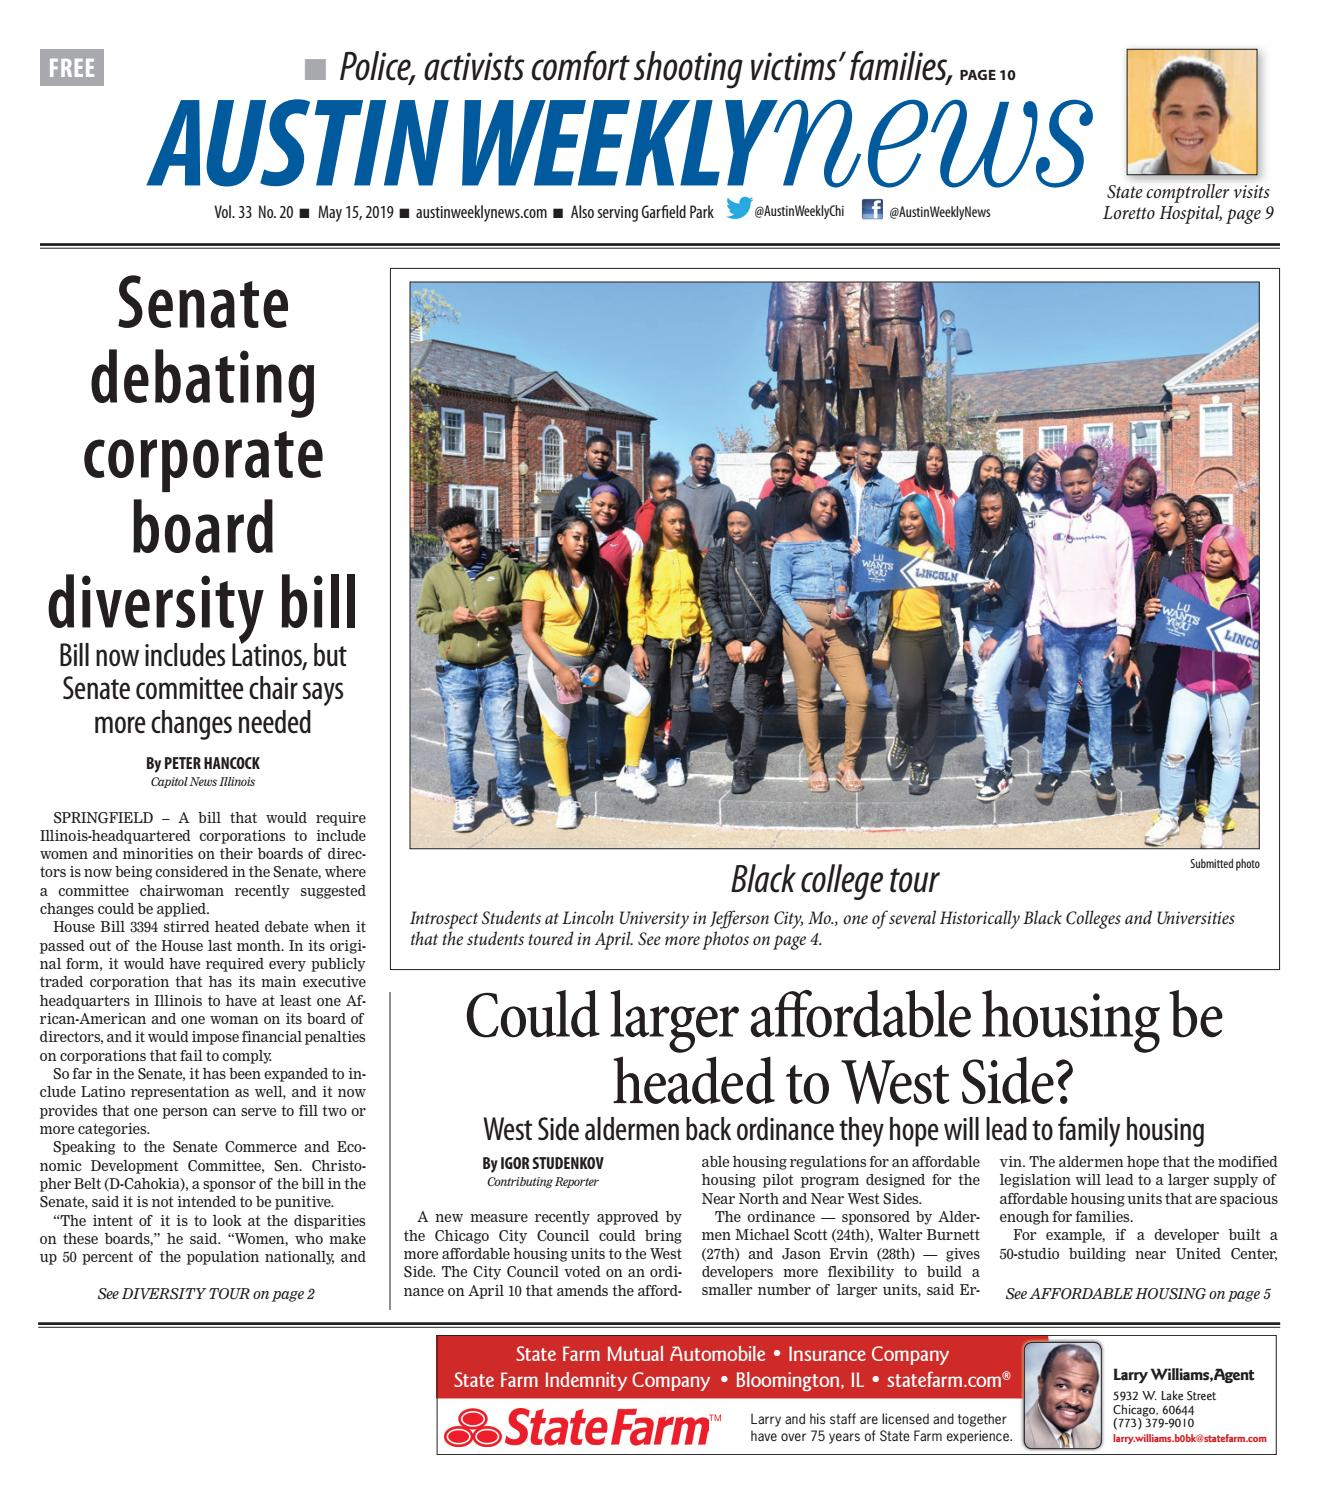 Austin Weekly News 051519 by Wednesday Journal - issuu